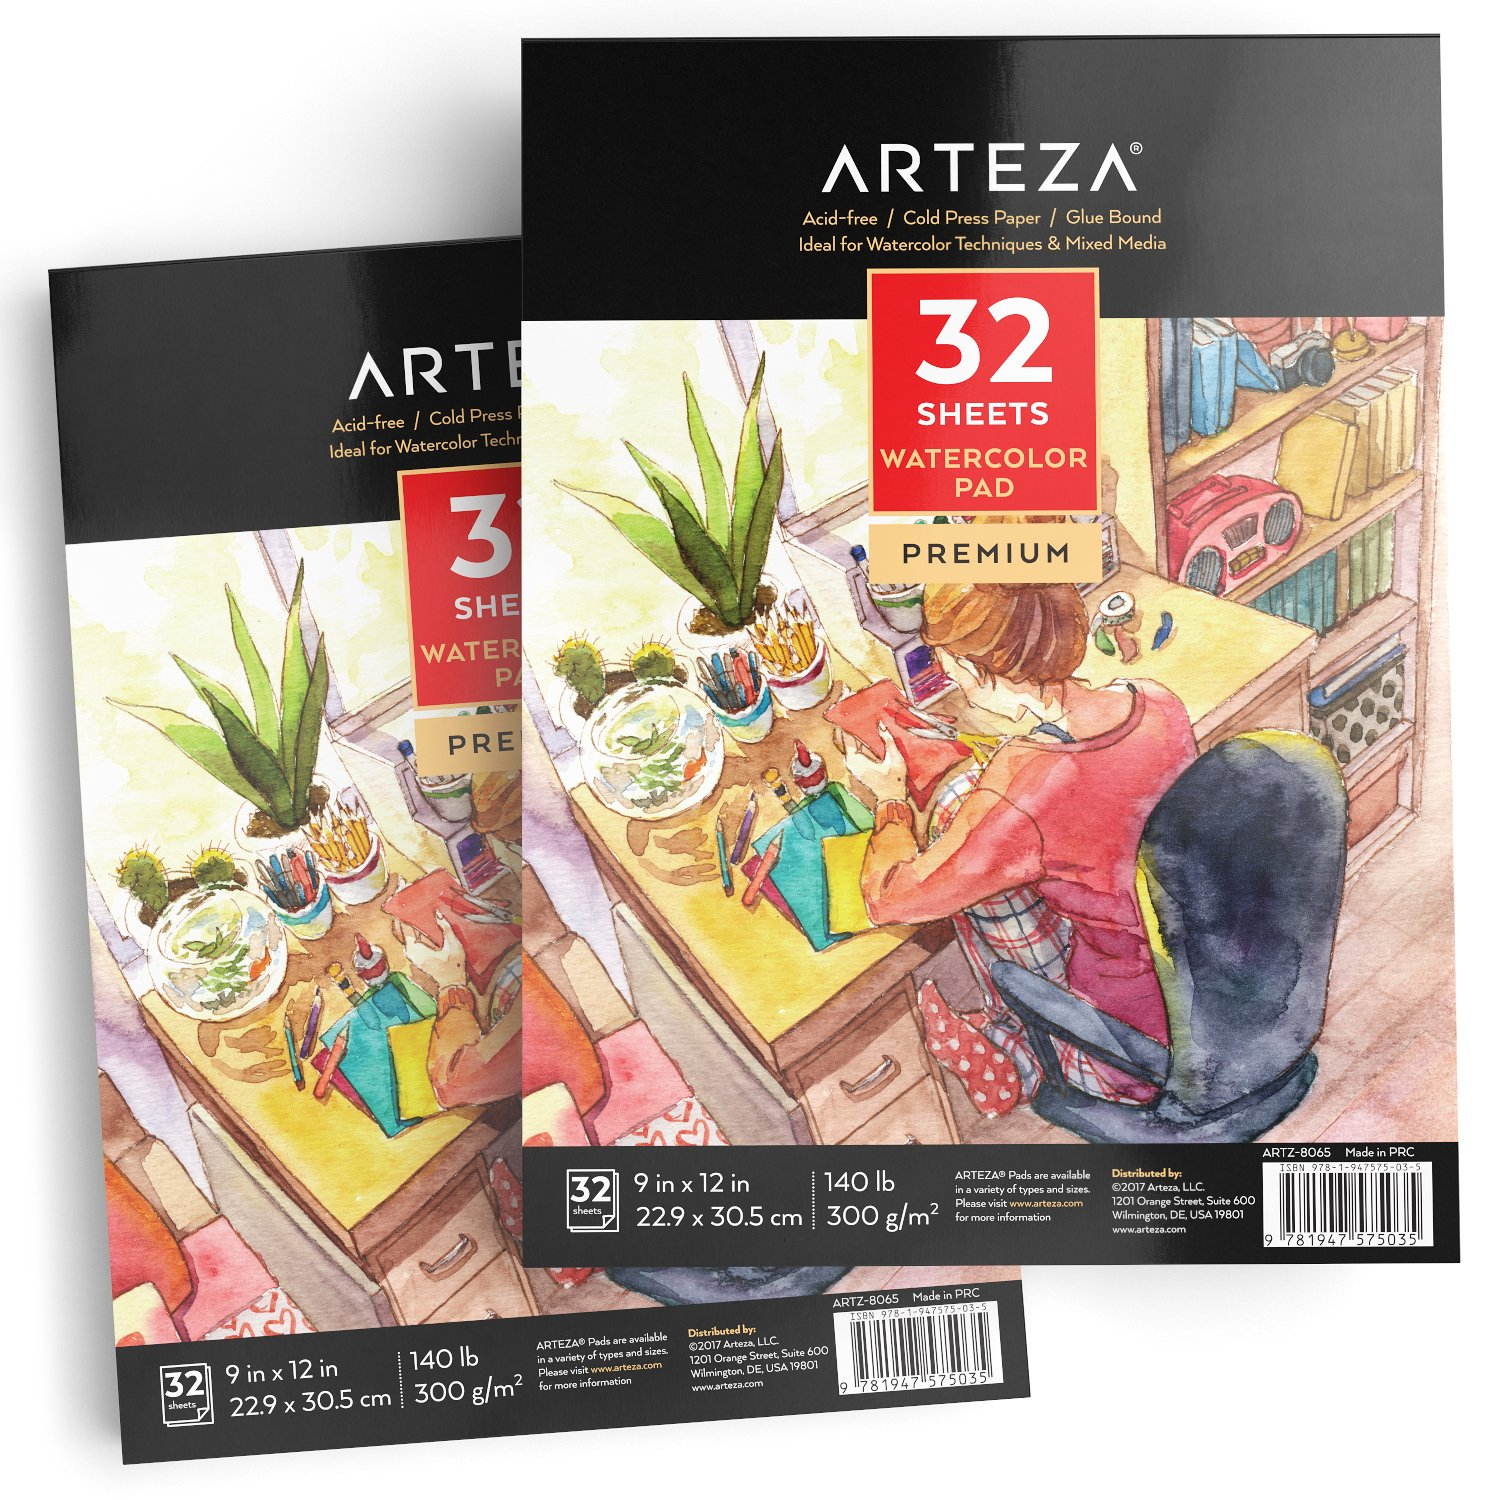 ARTEZA 9x12'' Watercolor Pad, Pack of 2, 64 Sheets (140lb/300gsm), 32 Sheets Each, Acid Free Cold Pressed Paper, Painting & Drawing Sketchbook, Perfect for Wet, Dry & Mixed Media by ARTEZA